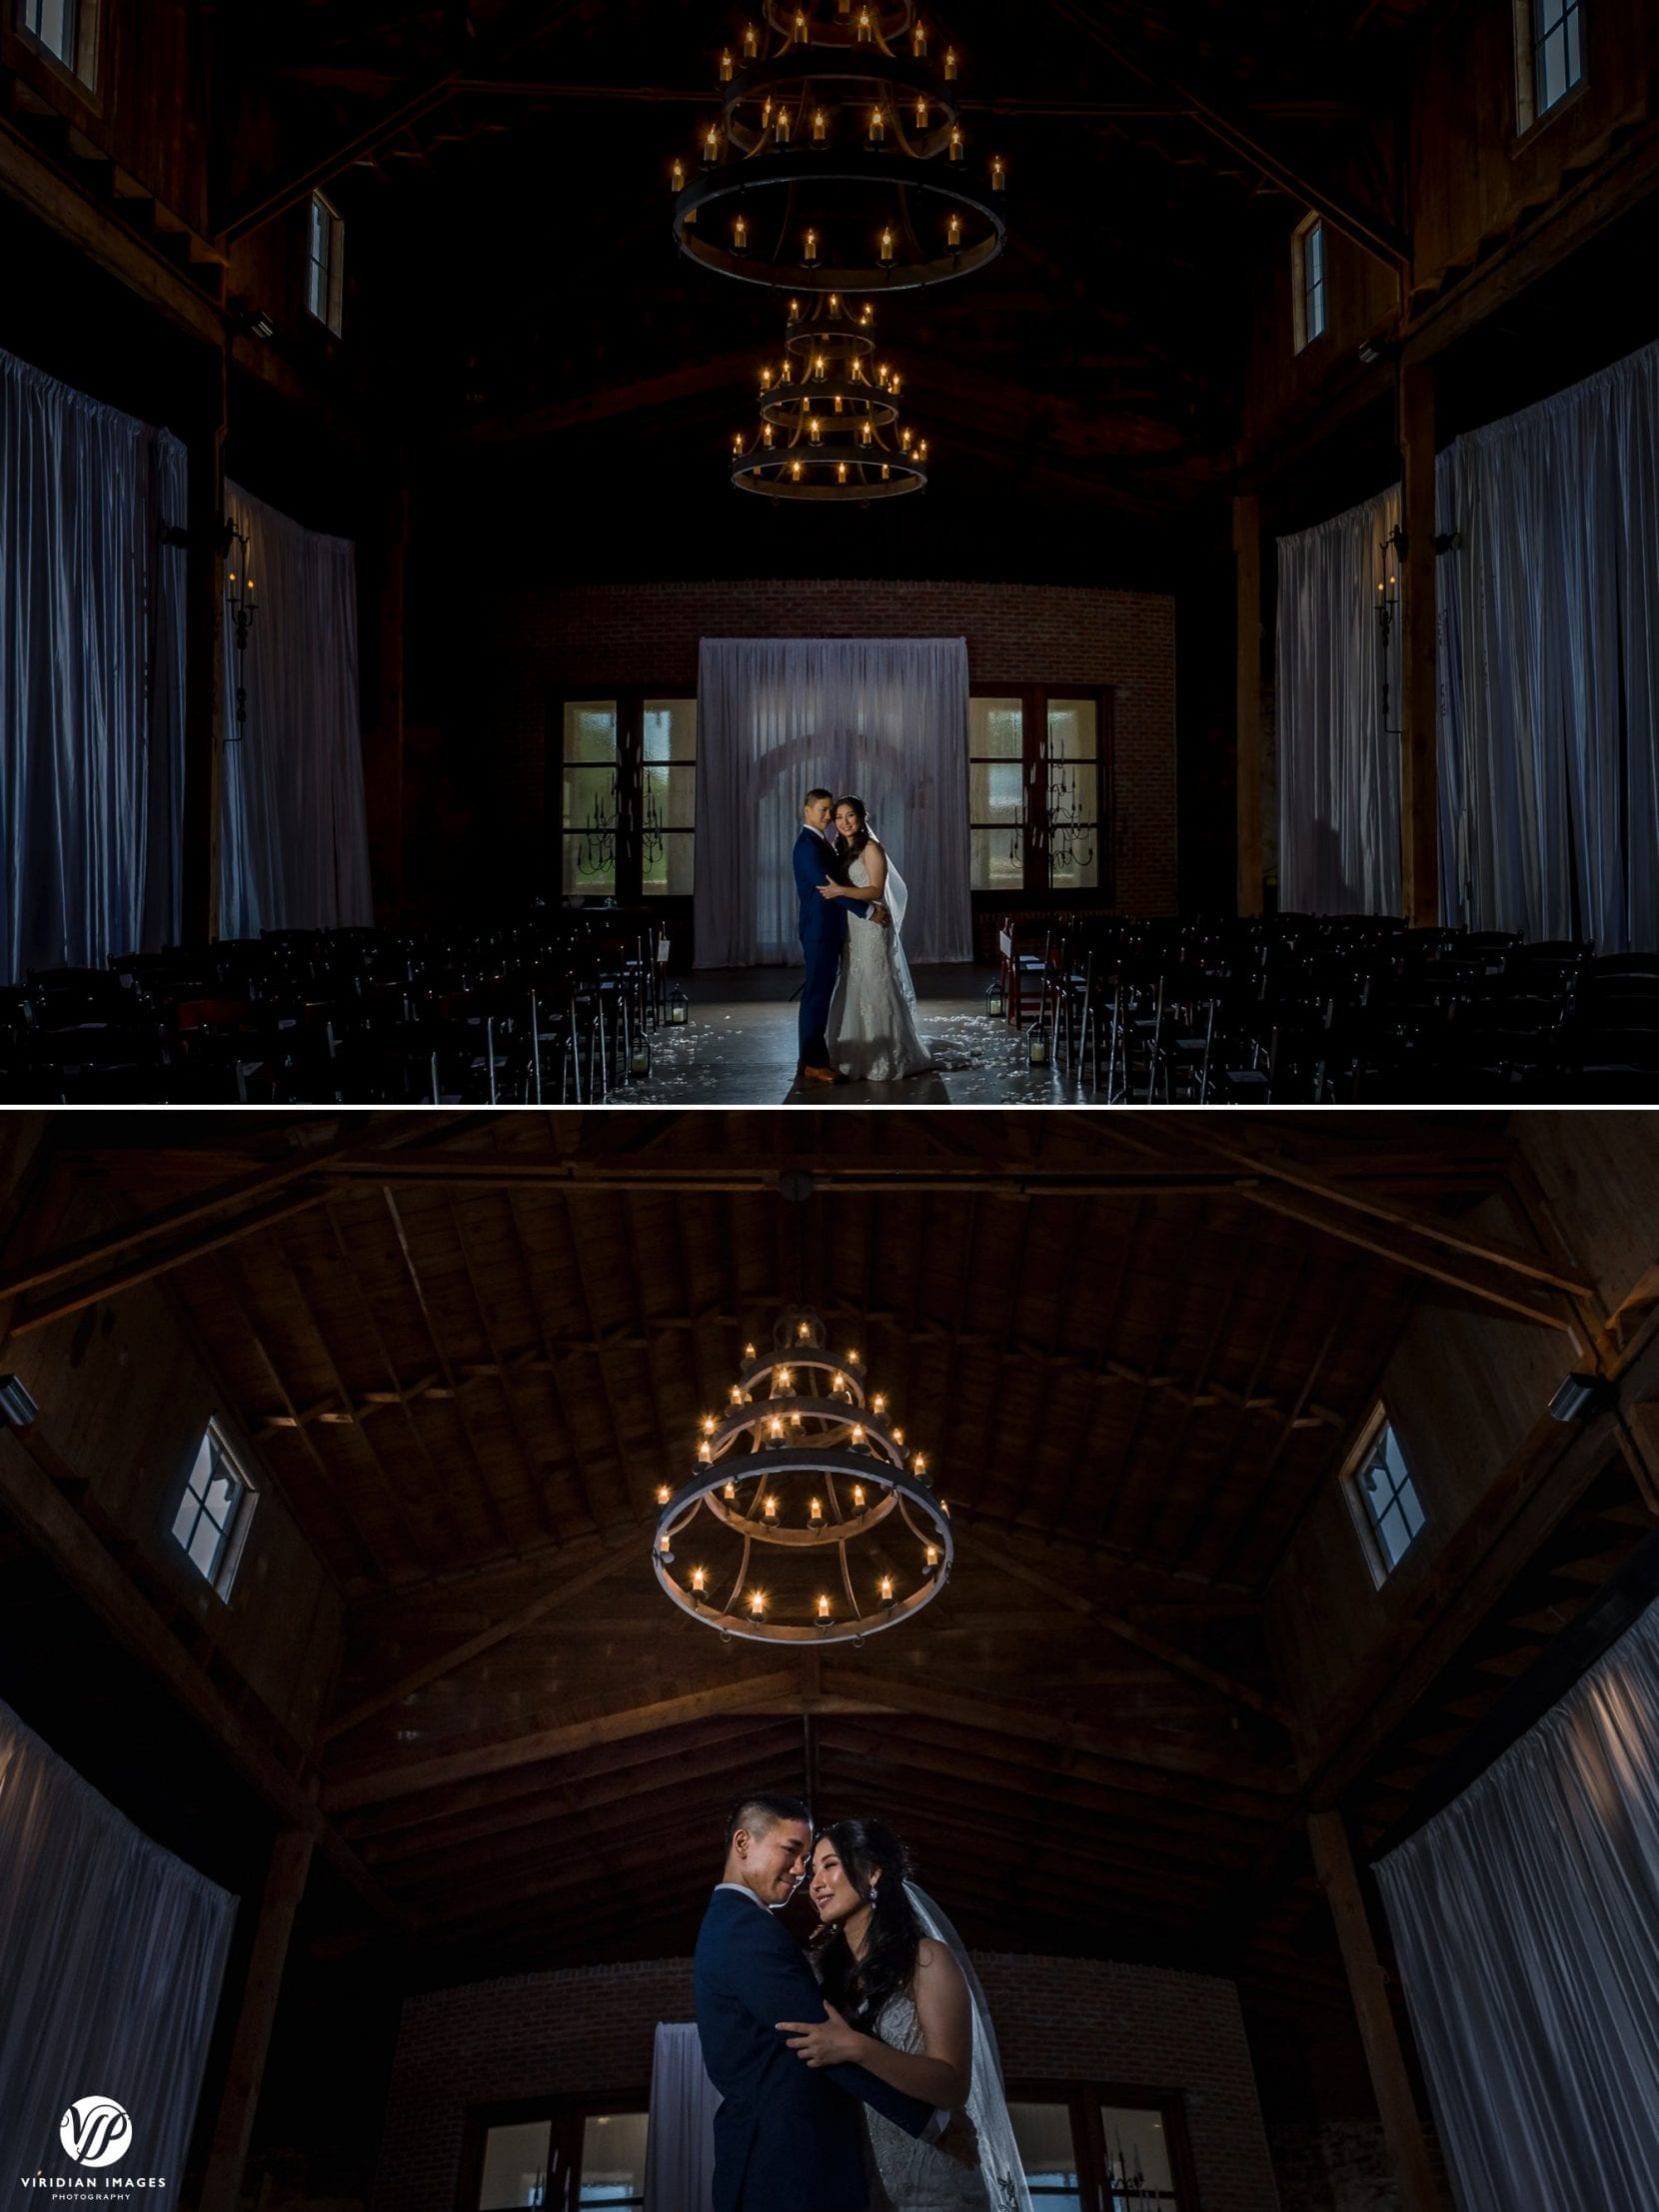 backlit portraits inside wedding venue